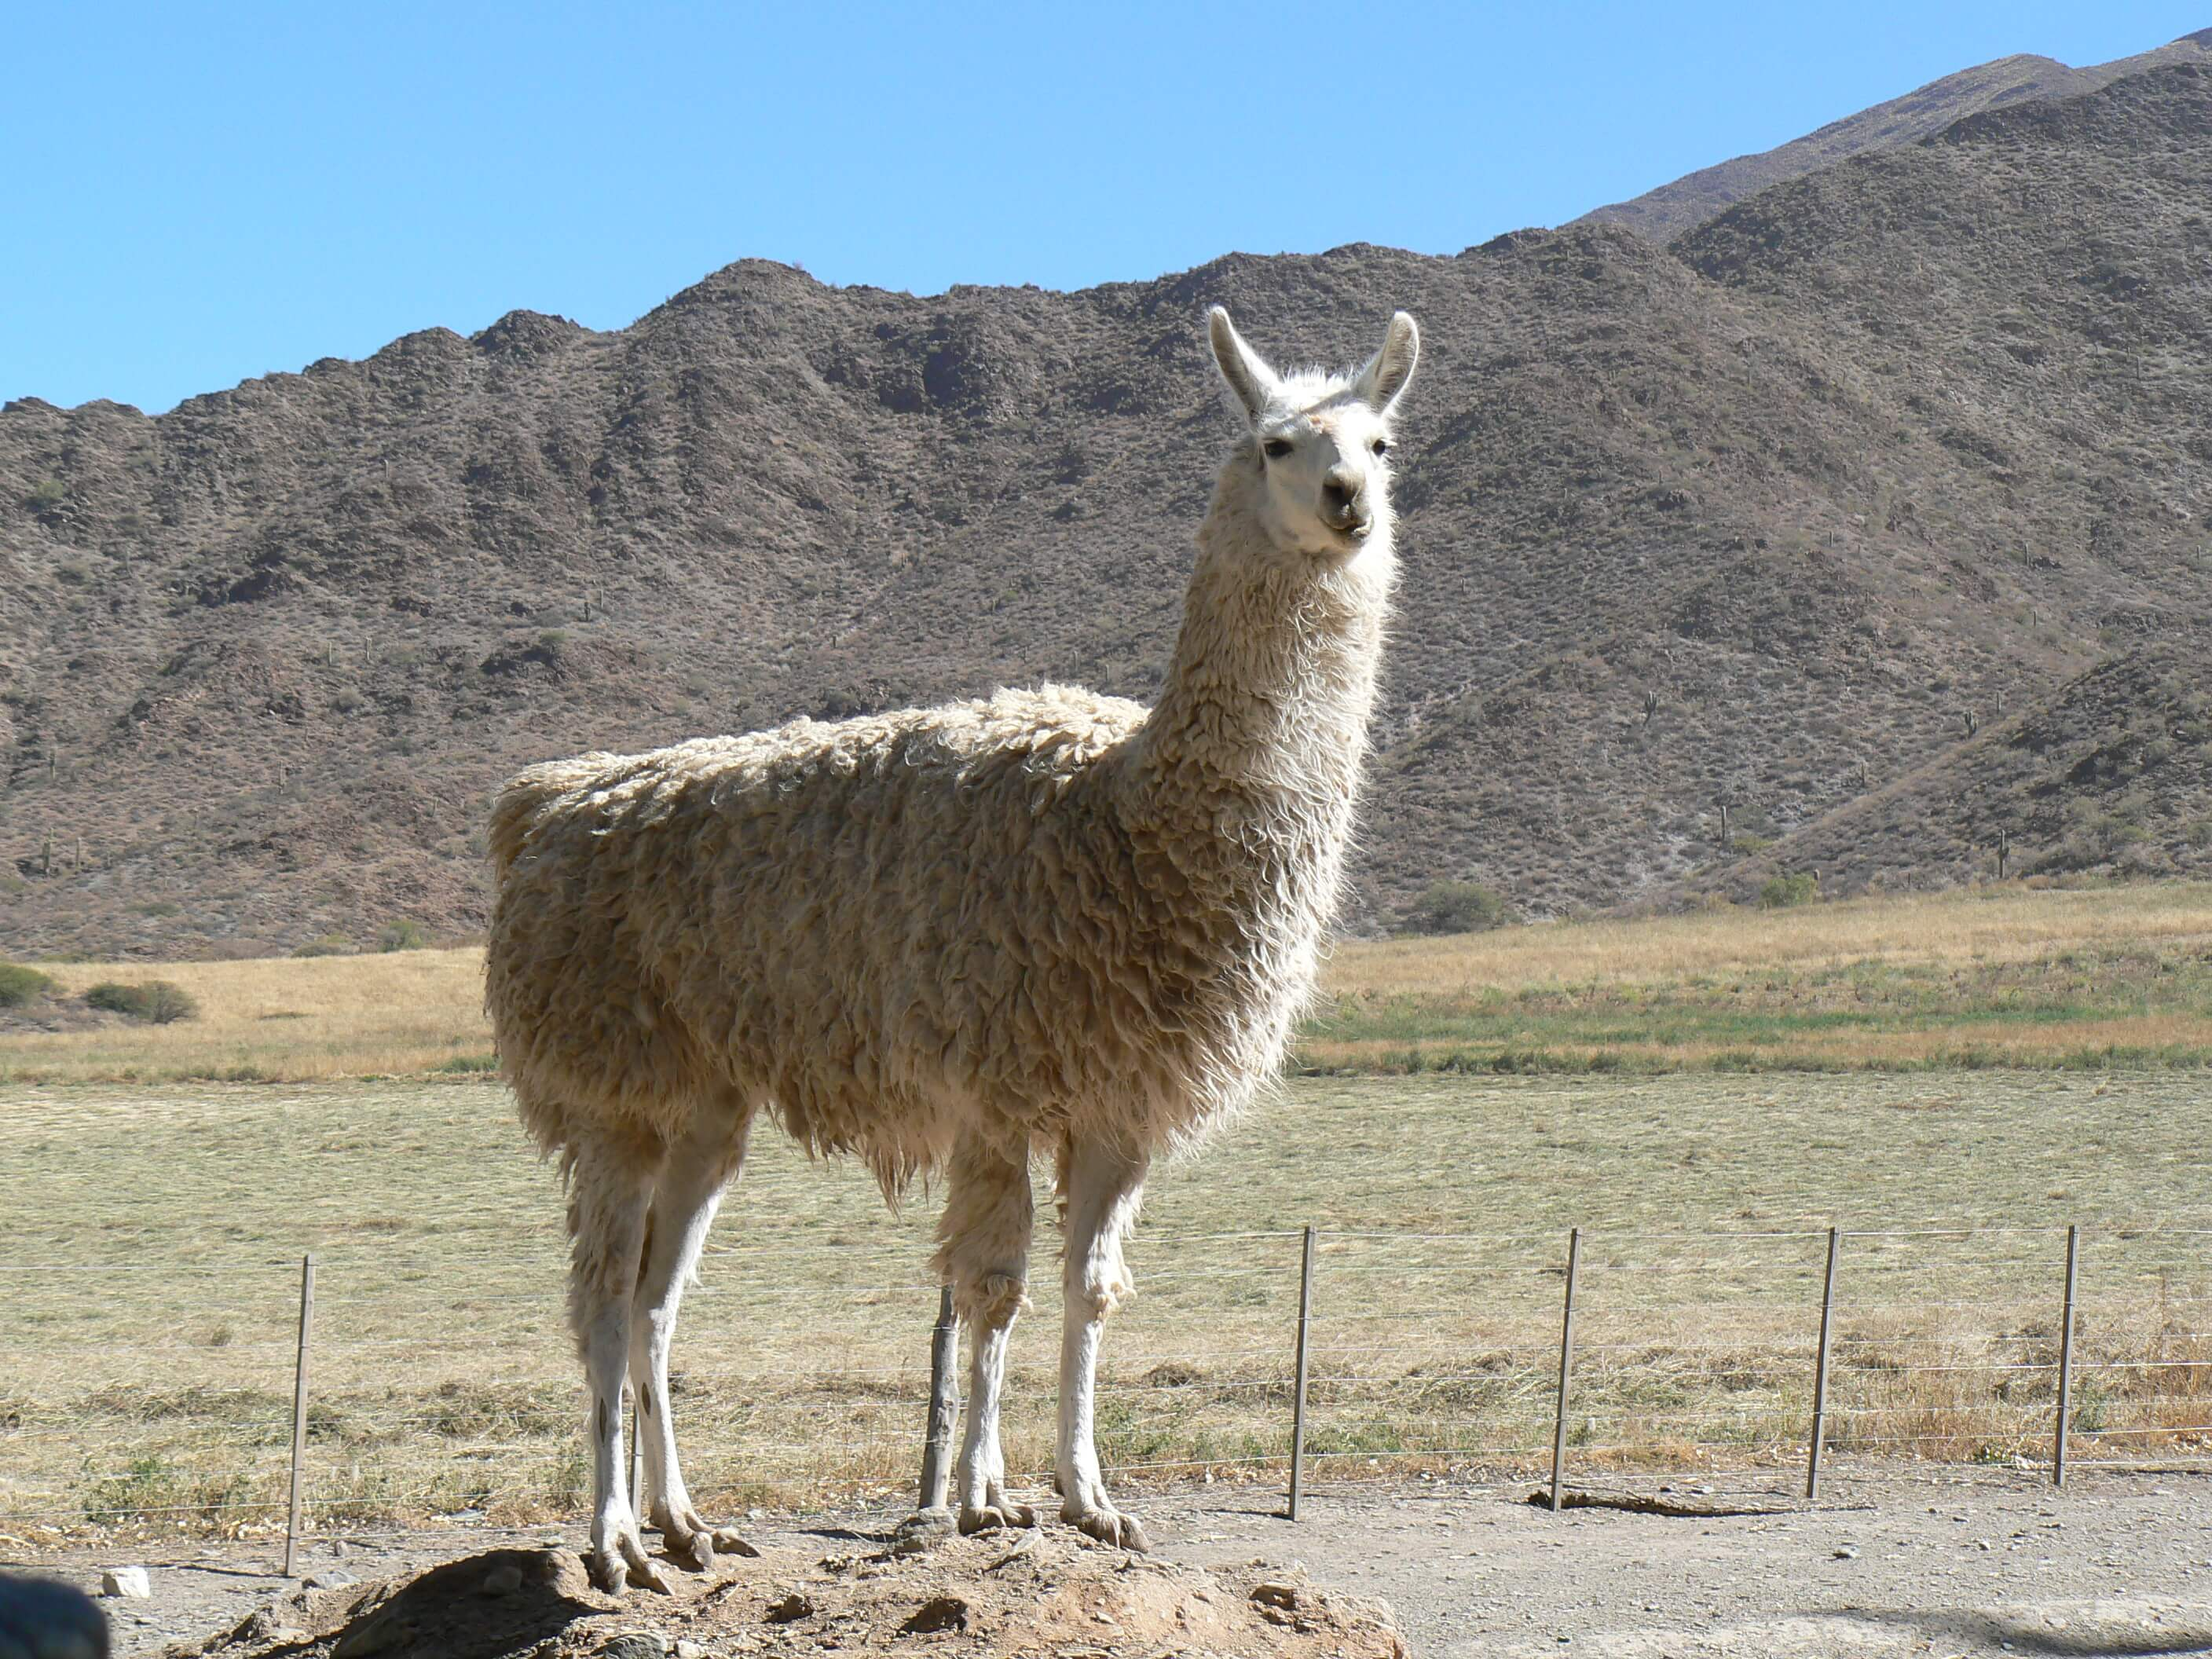 Lama by the road